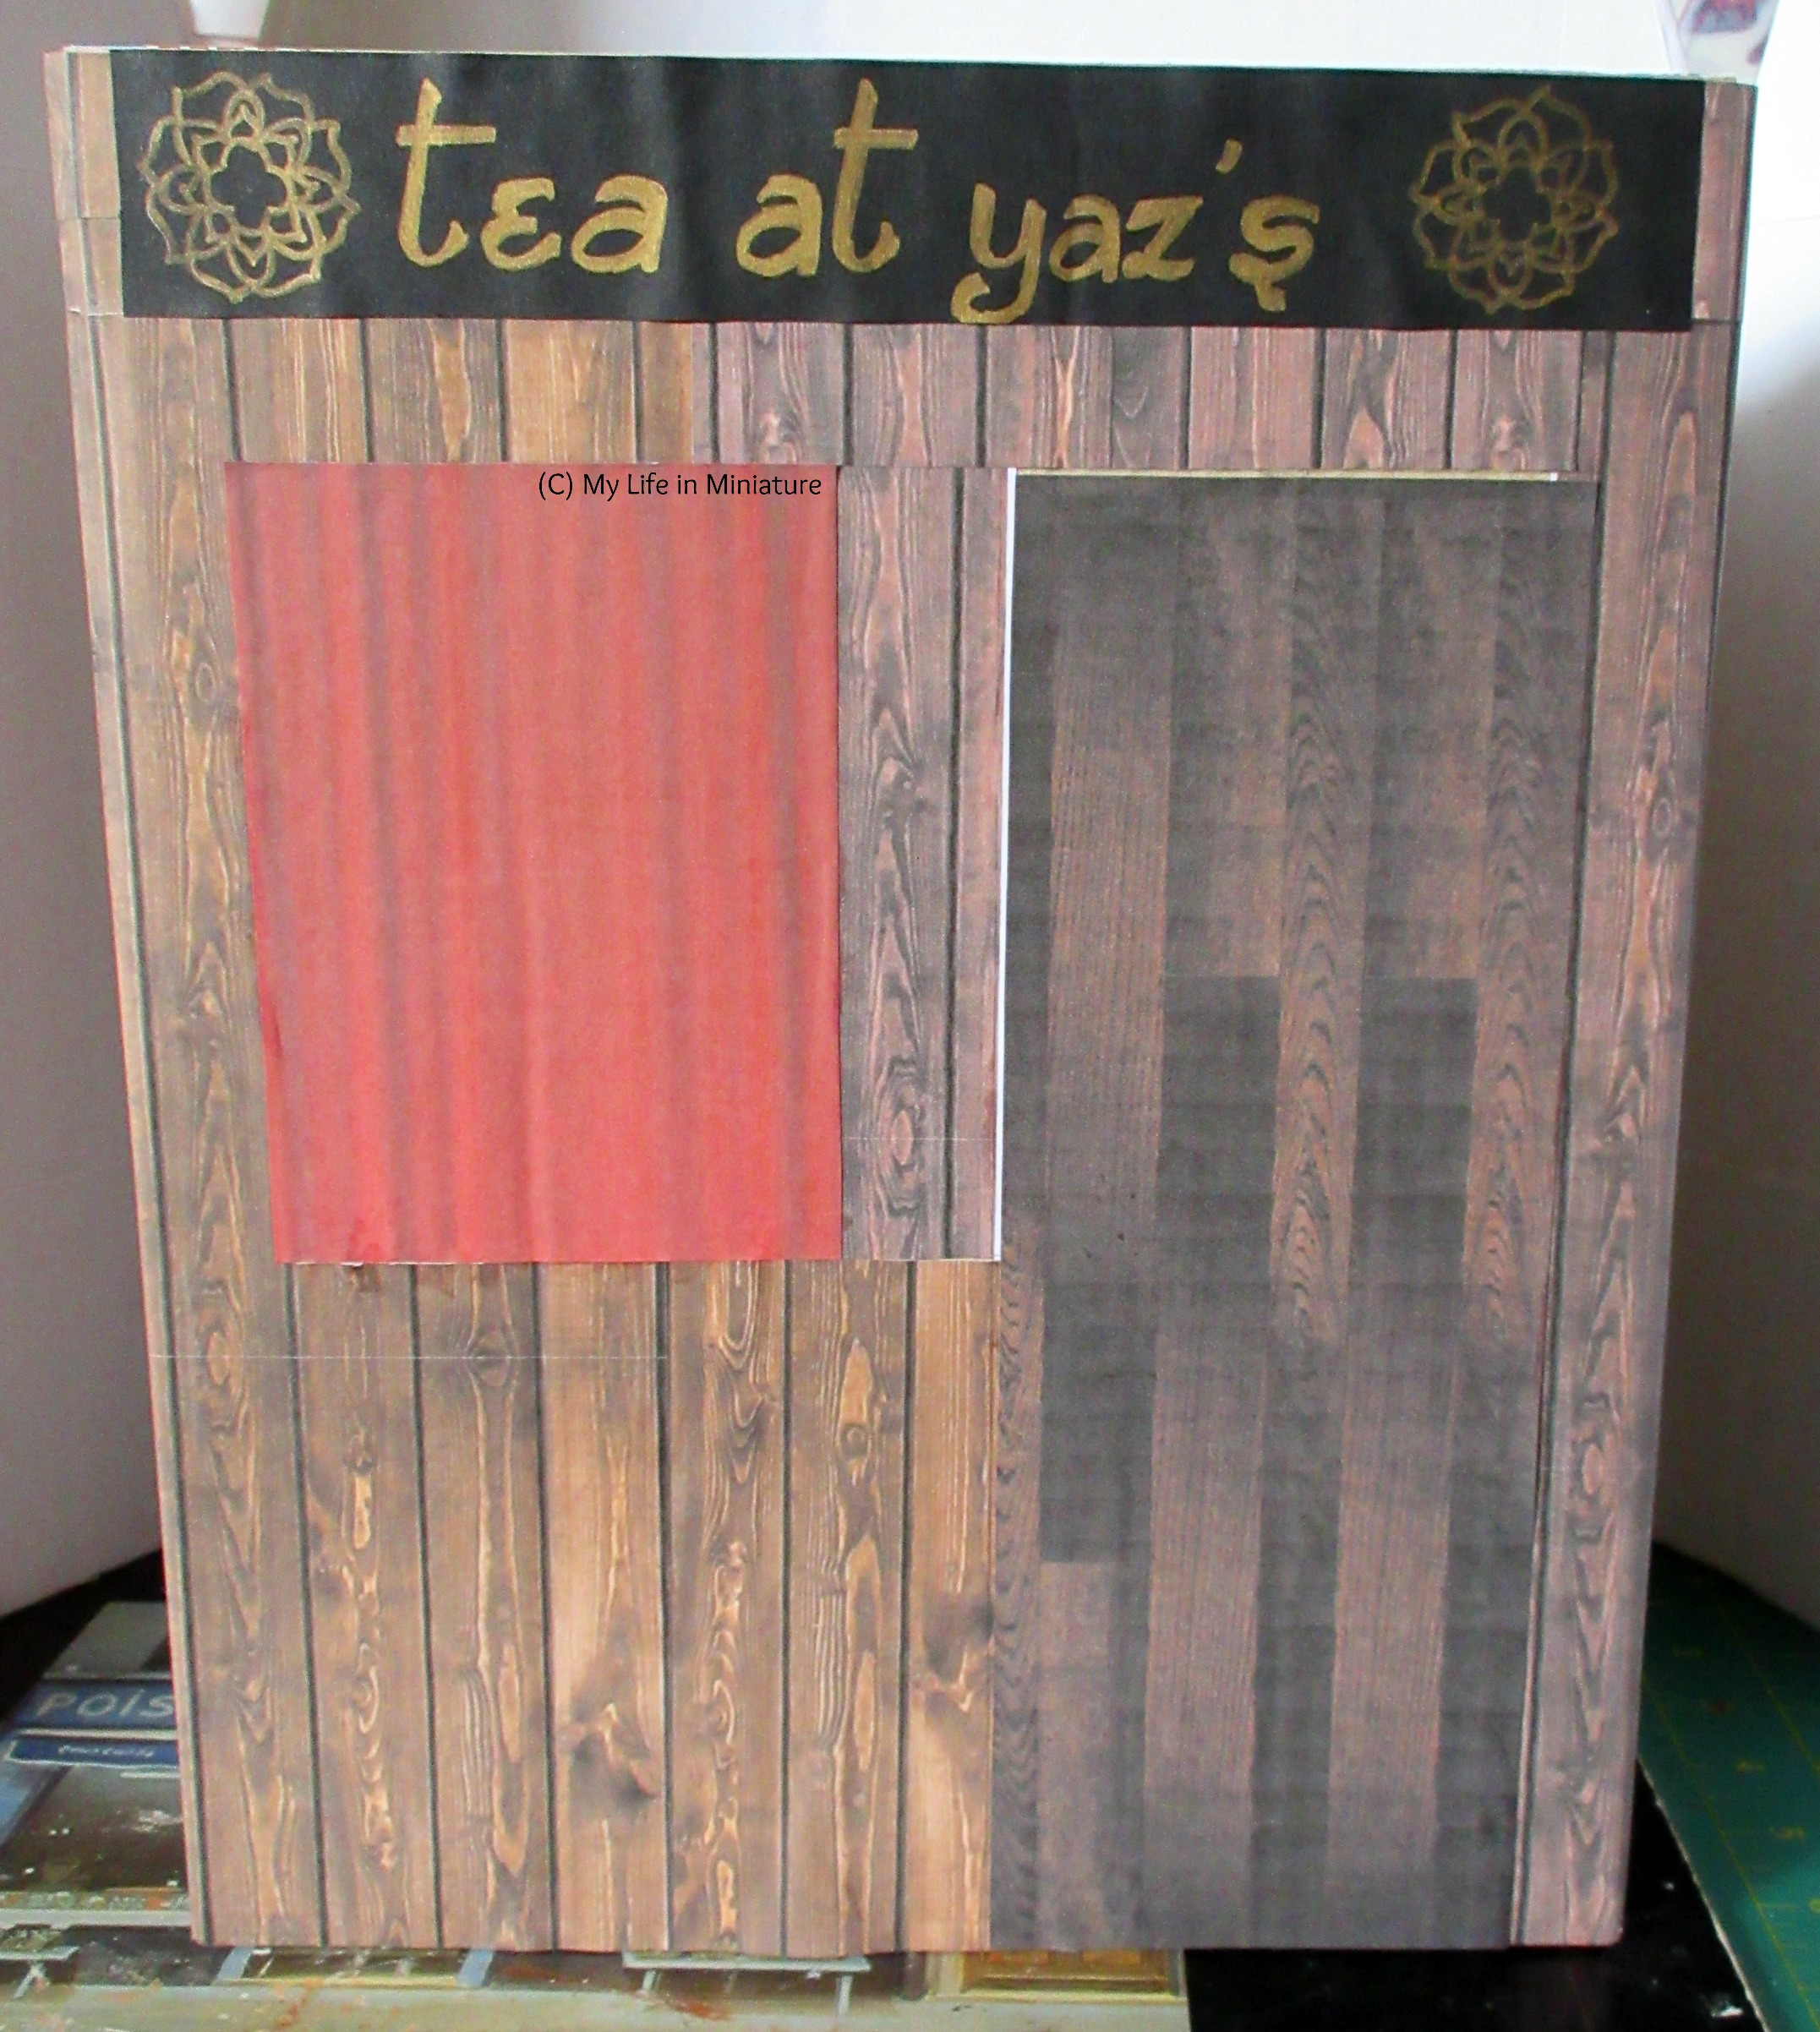 A cereal box sits on a protective mat, covered in dark wood-printed paper. Across the top is a black strip with 'Tea at Yaz's' written on it in gold. Underneath it to the left is a rectangle of red paper.